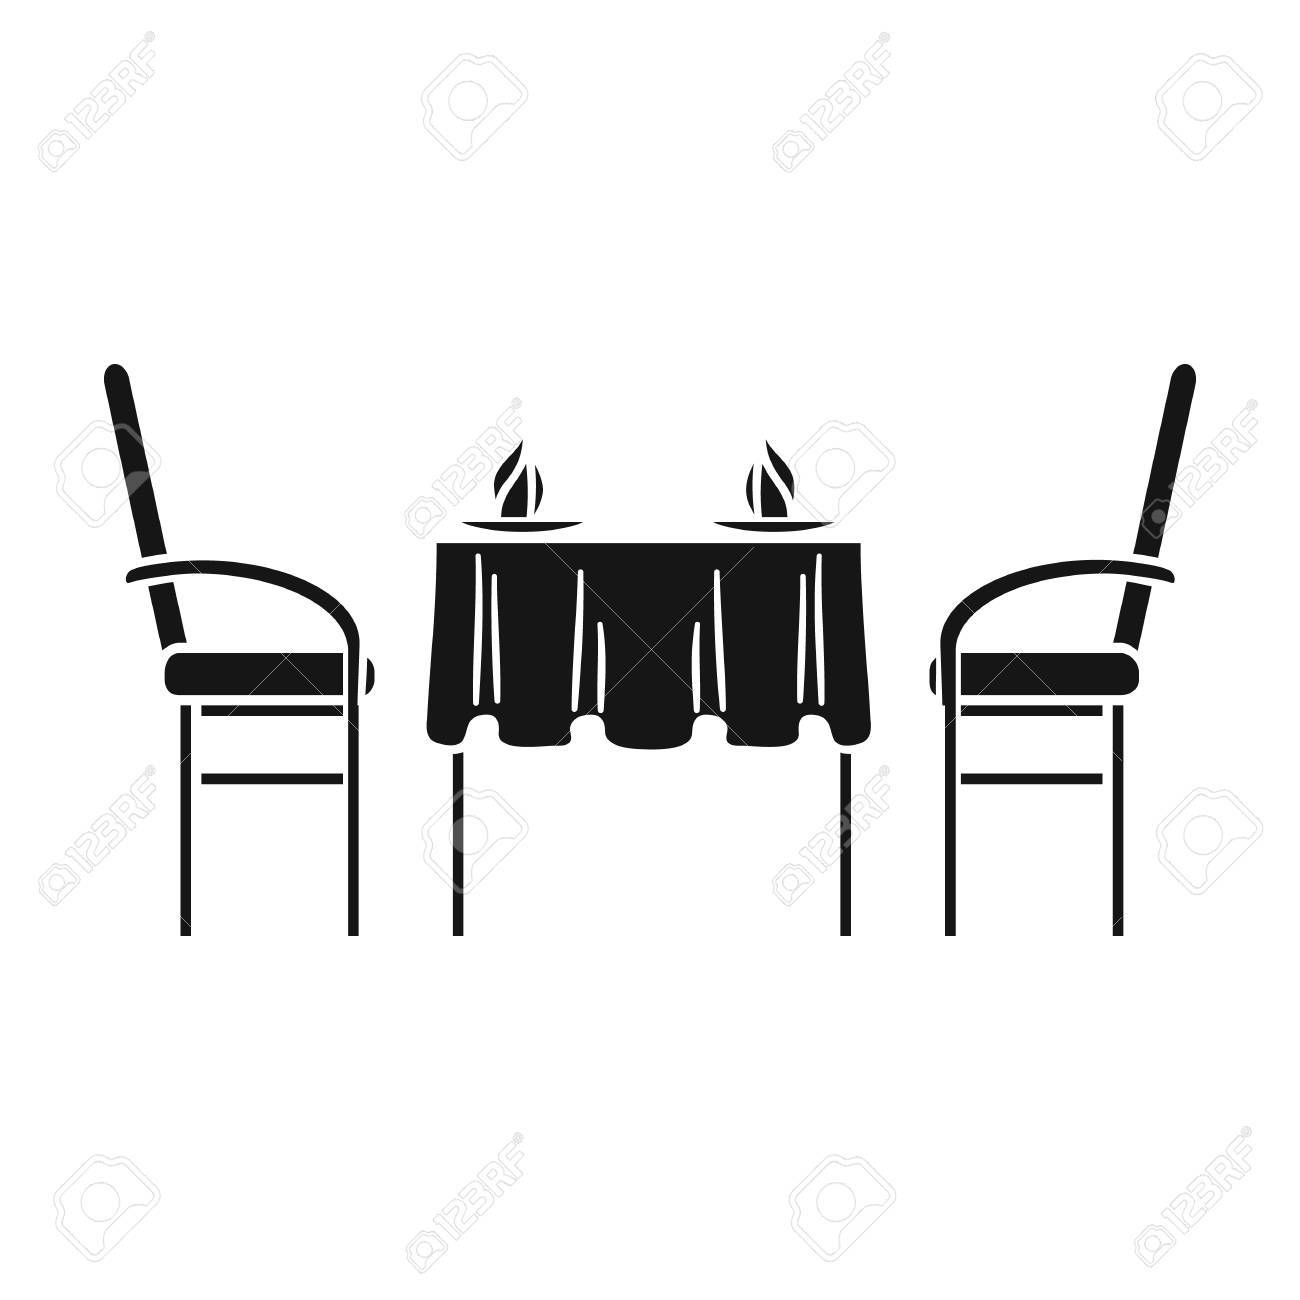 Restaurant table icon in black style isolated on white background.